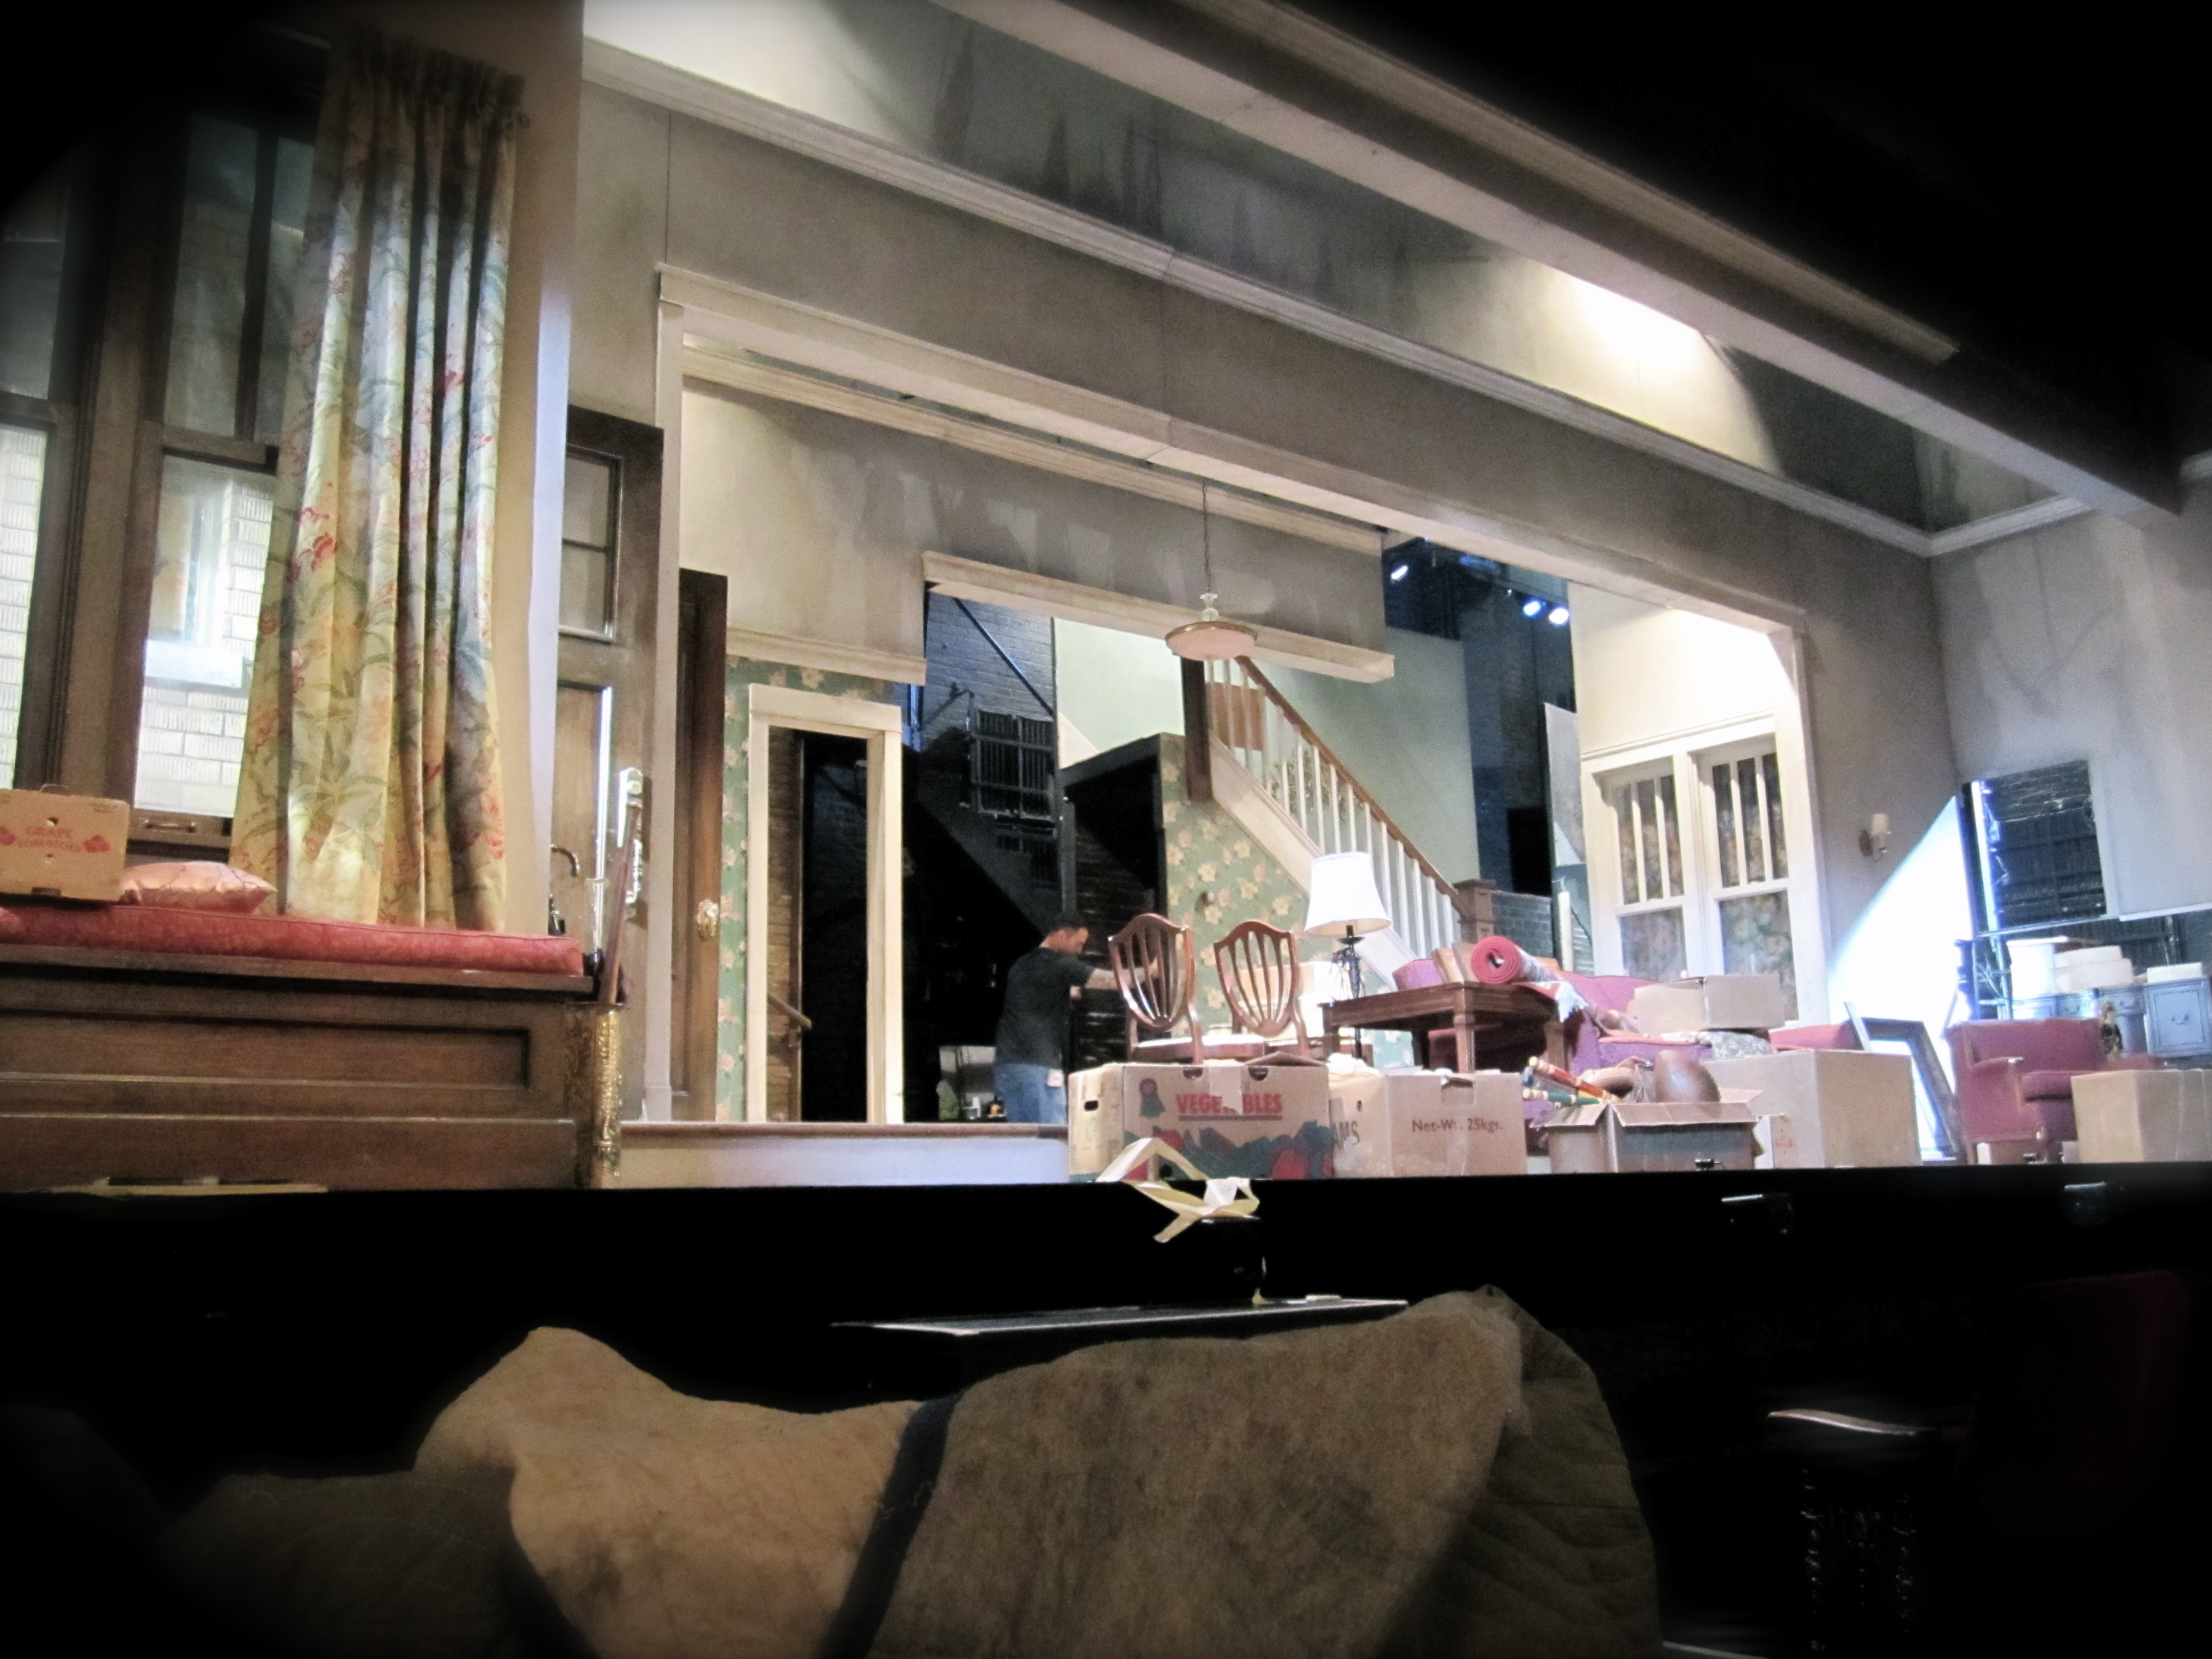 BWW Exclusive Blog: CLYBOURNE PARK Behind the Scenes: Day 3 (Part 2)